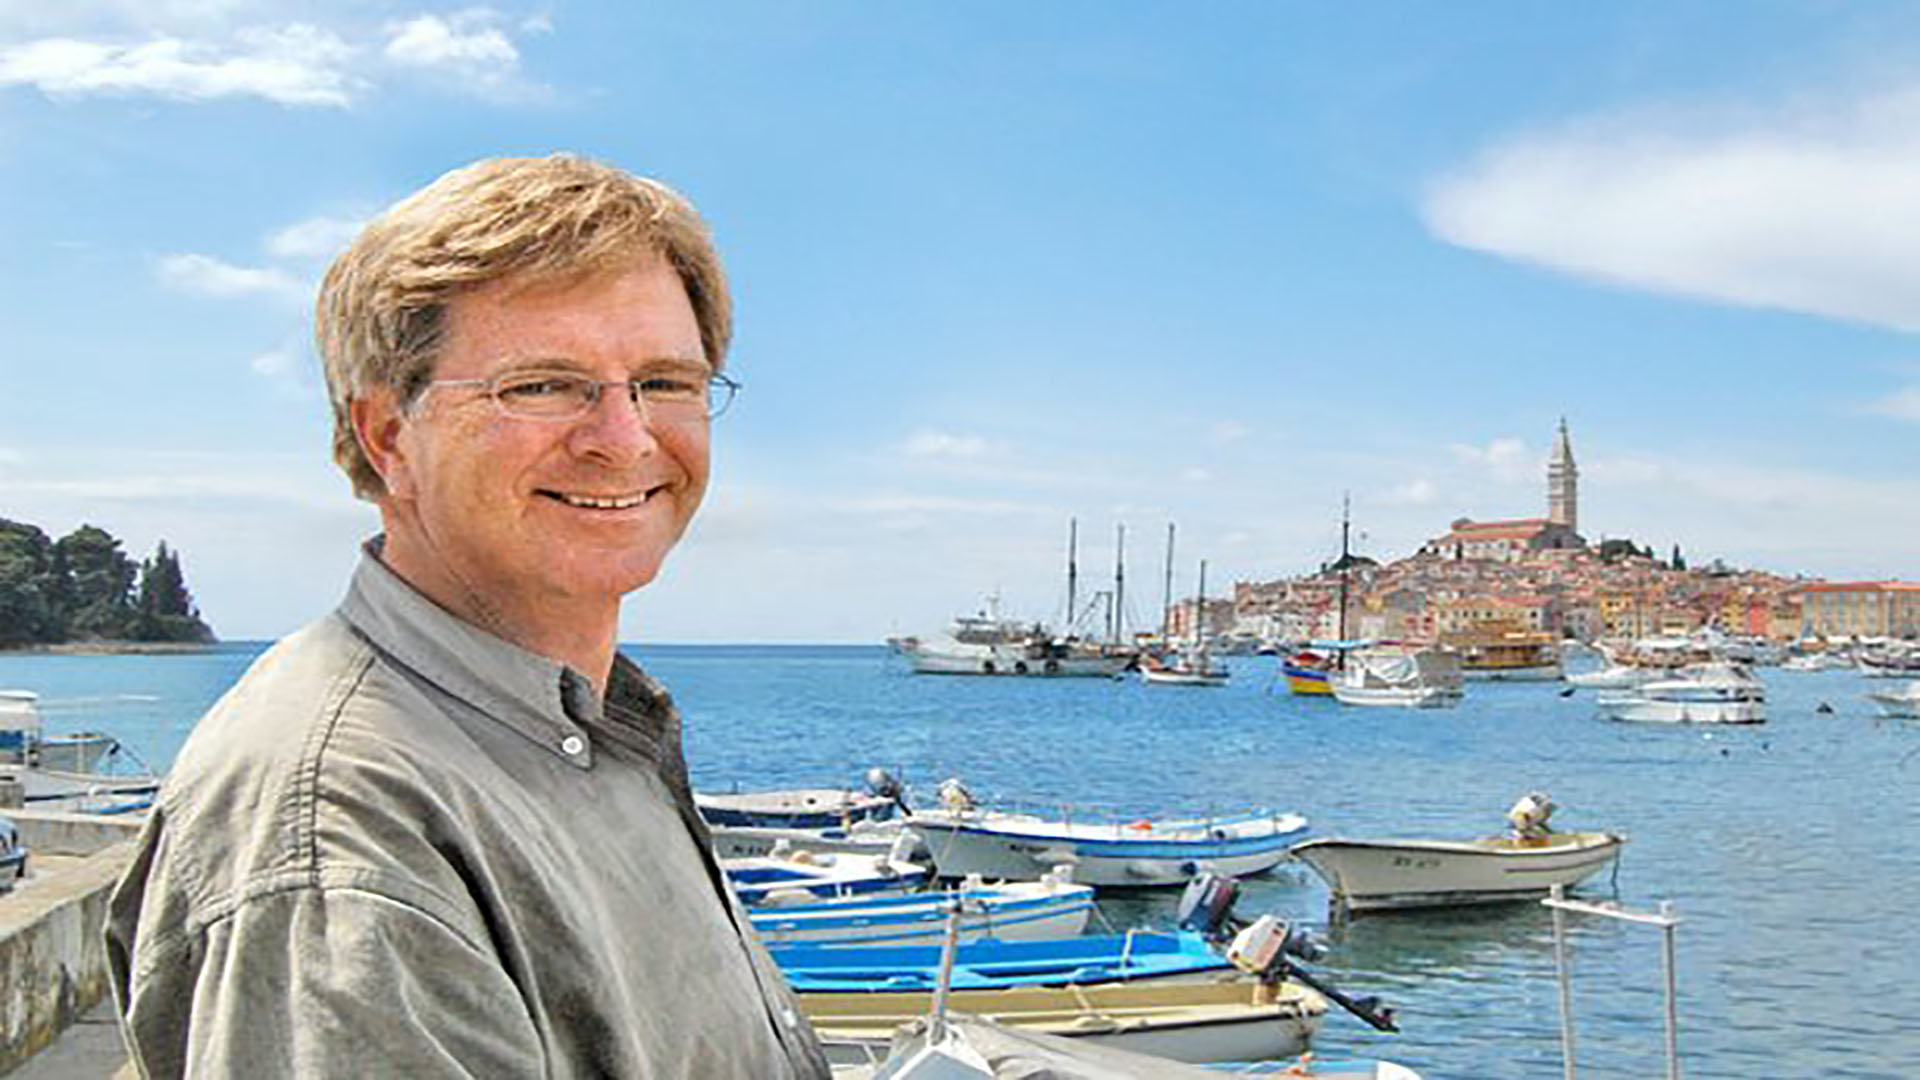 Rick Steves' Travel Gifts